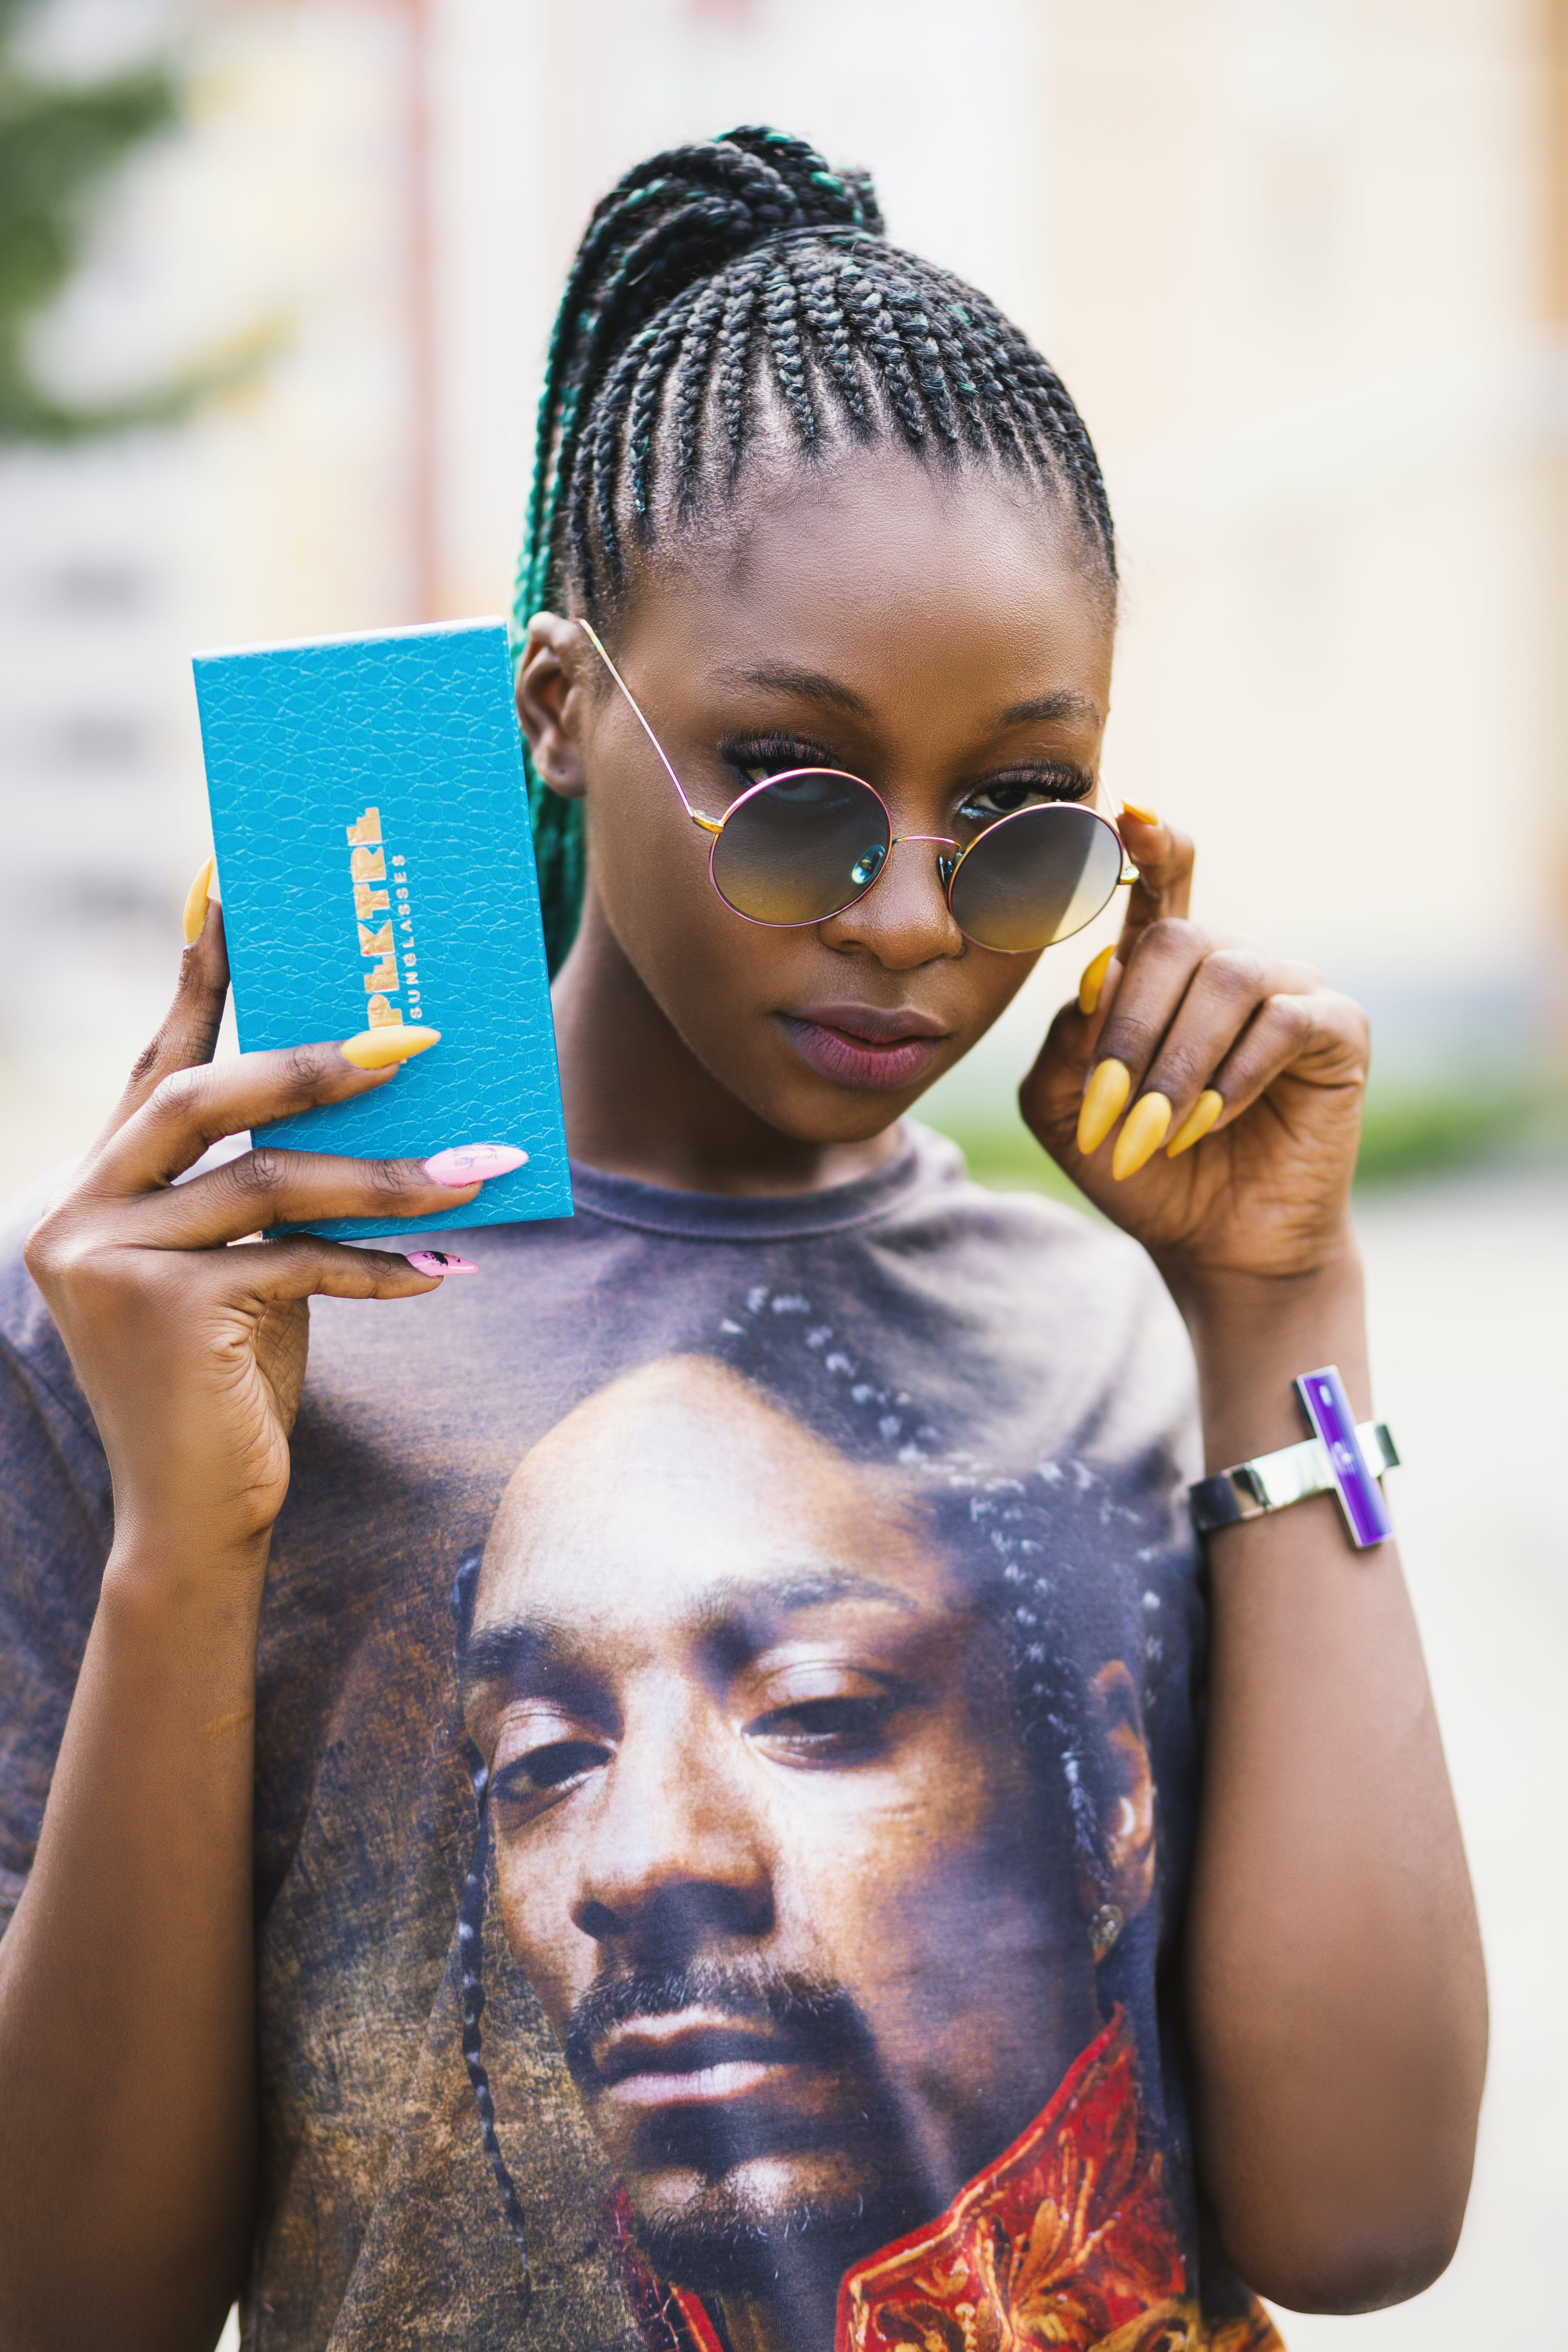 Woman in Black Tee Shirt Holding Blue Case